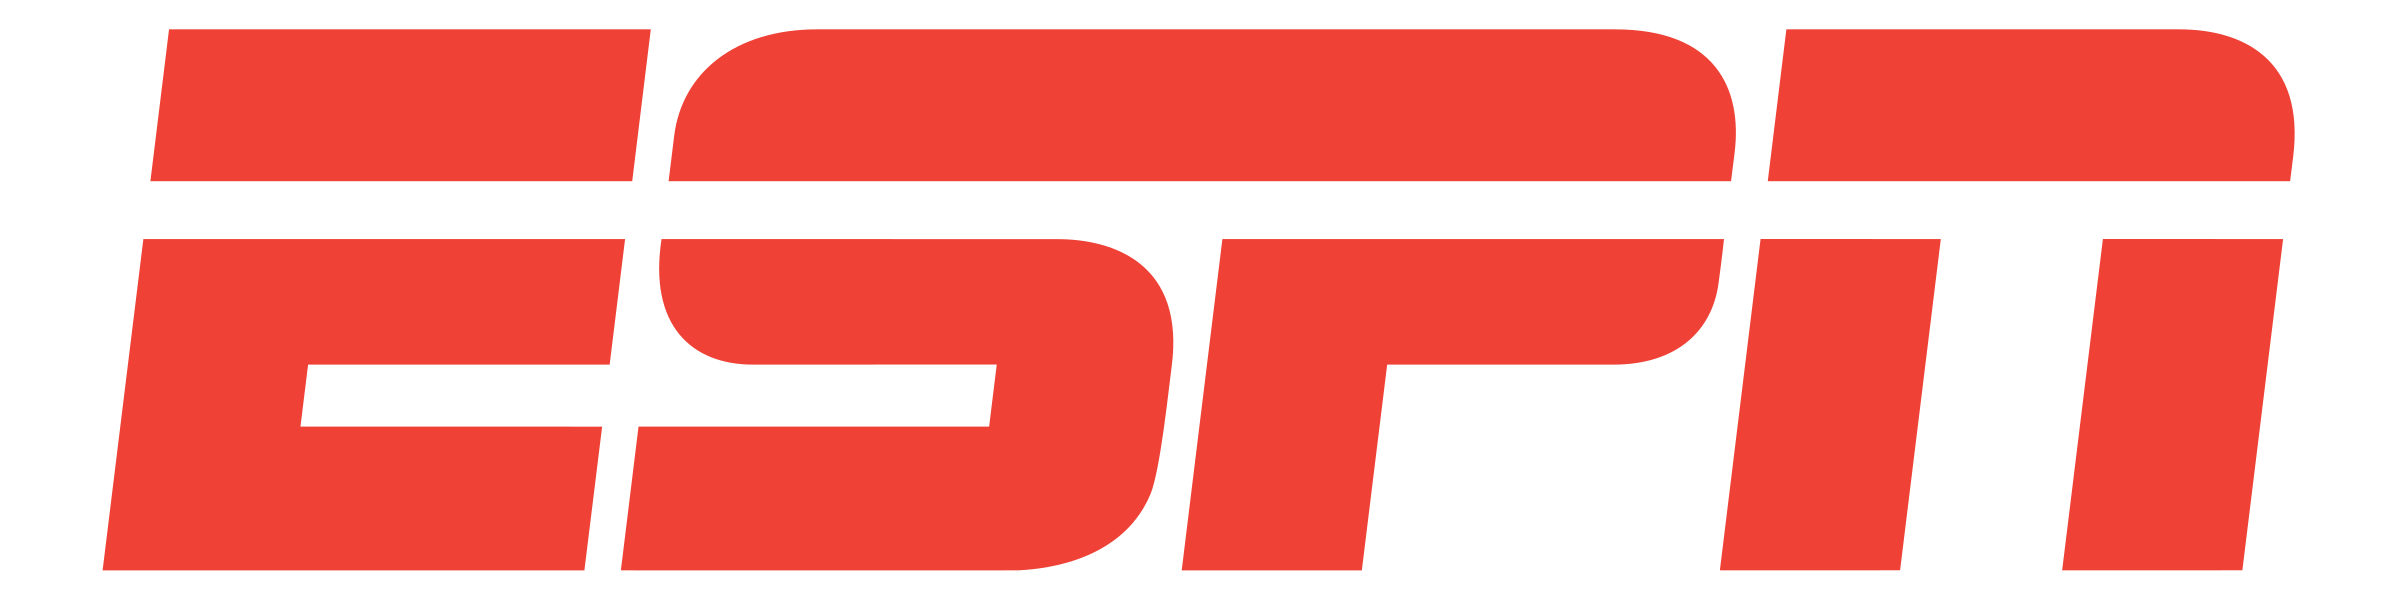 espn logo png transparent svg vector freebie supply rh freebiesupply com espn logo white png sony espn logo png